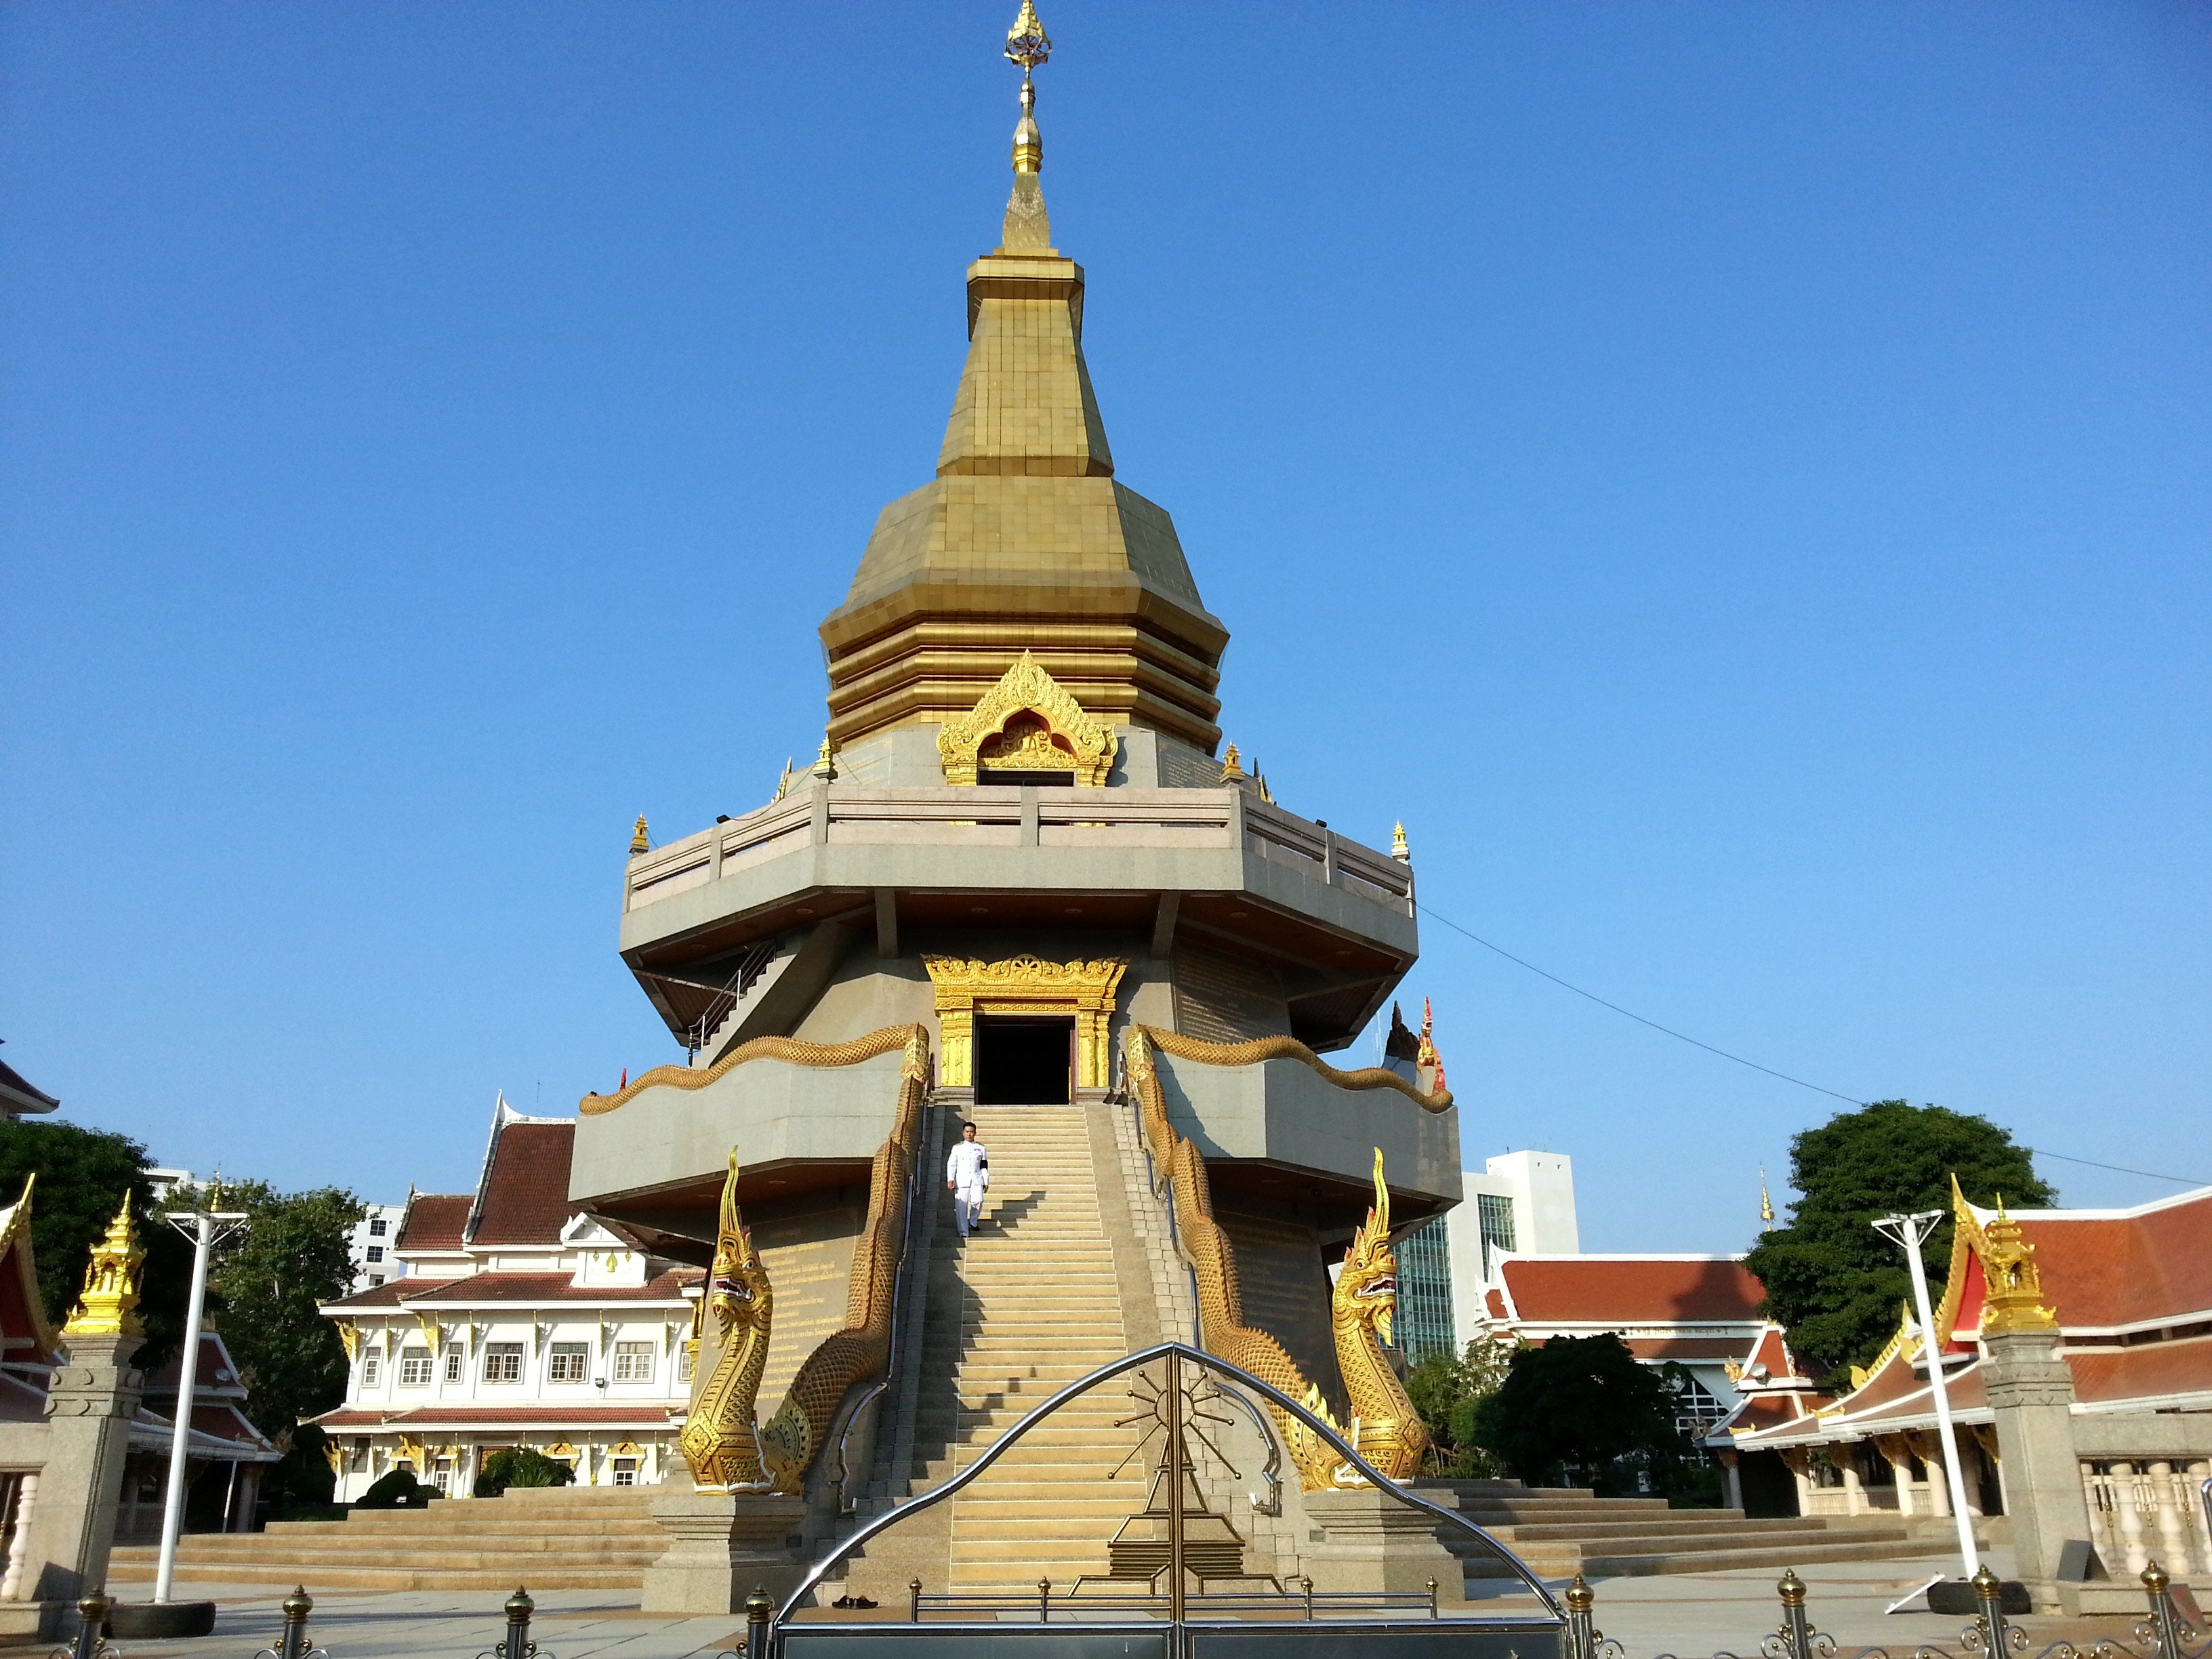 Wat Pothisomphon in Udon Thani